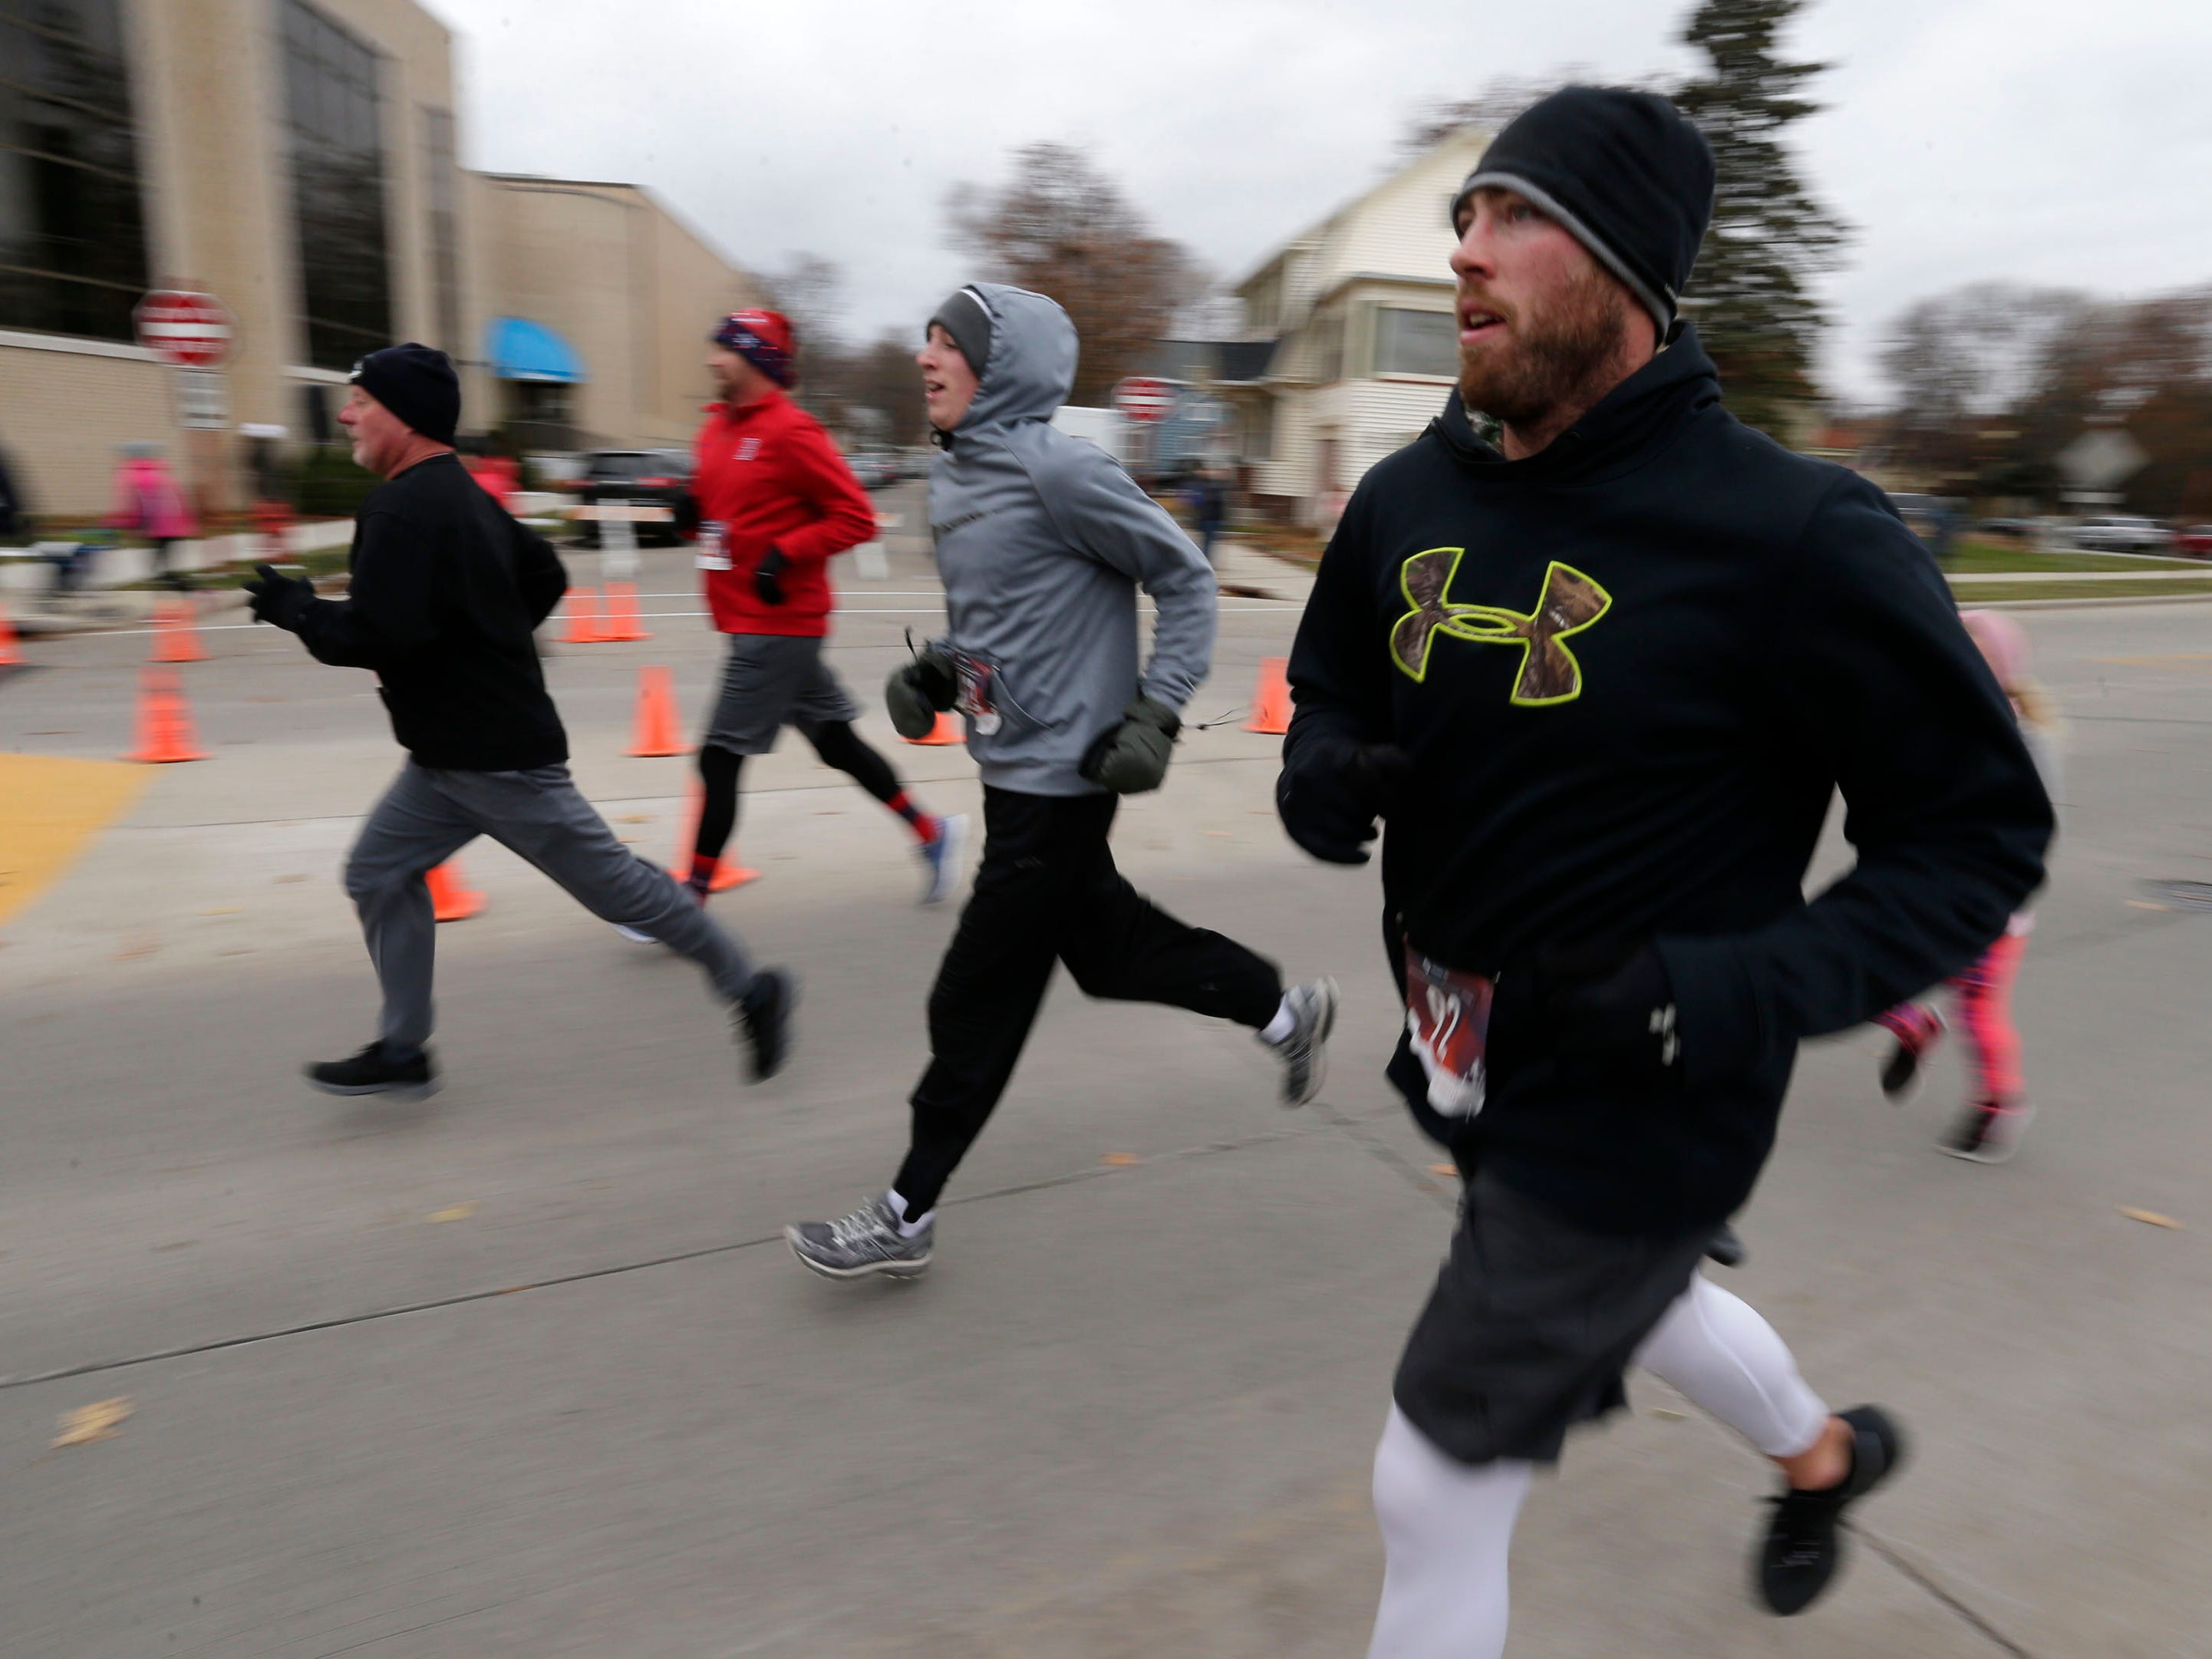 Runners enter the finish area at the Doug Opel Run for the Kids, Thursday, November 22, 2018, in Sheboygan, Wis.